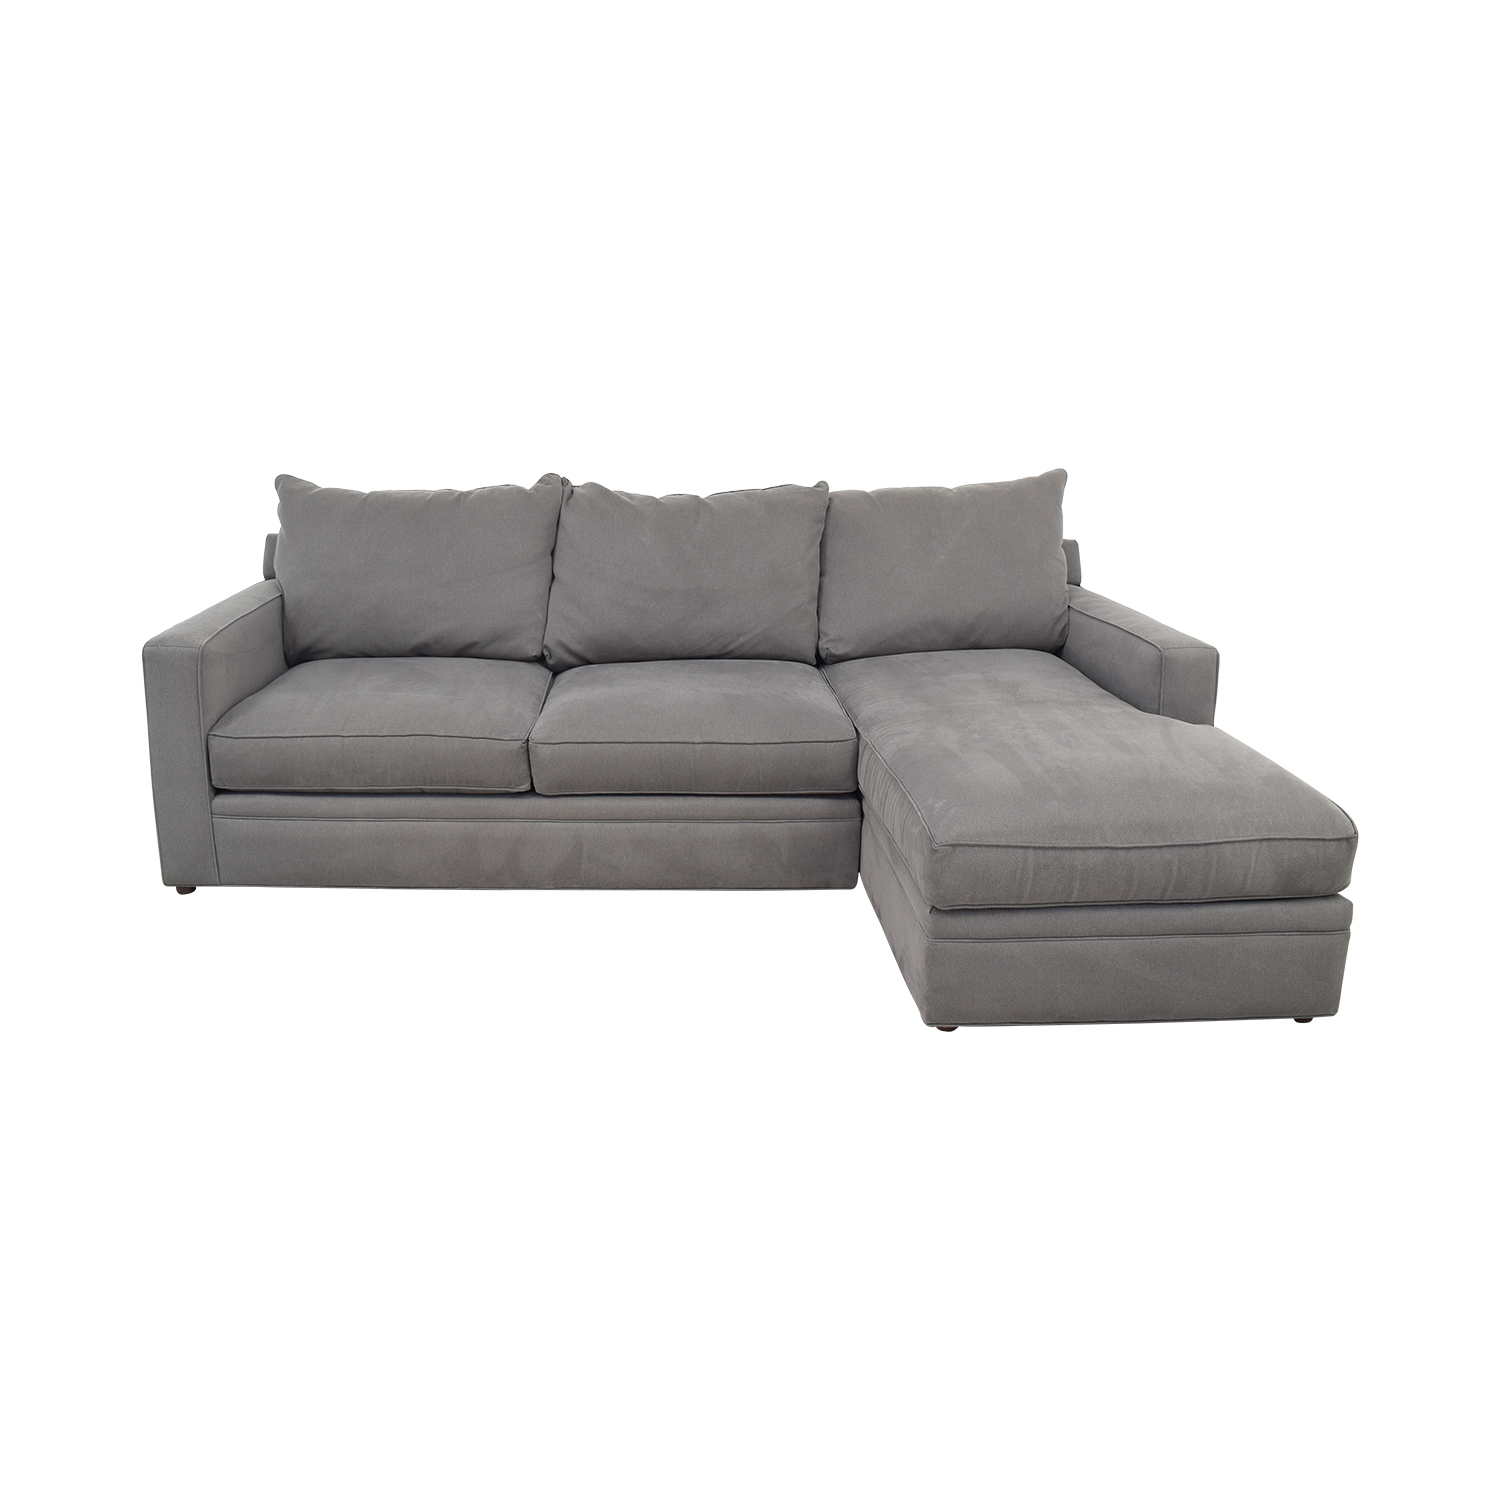 buy Room & Board Room & Board Orson Sectional Sofa with Chaise online